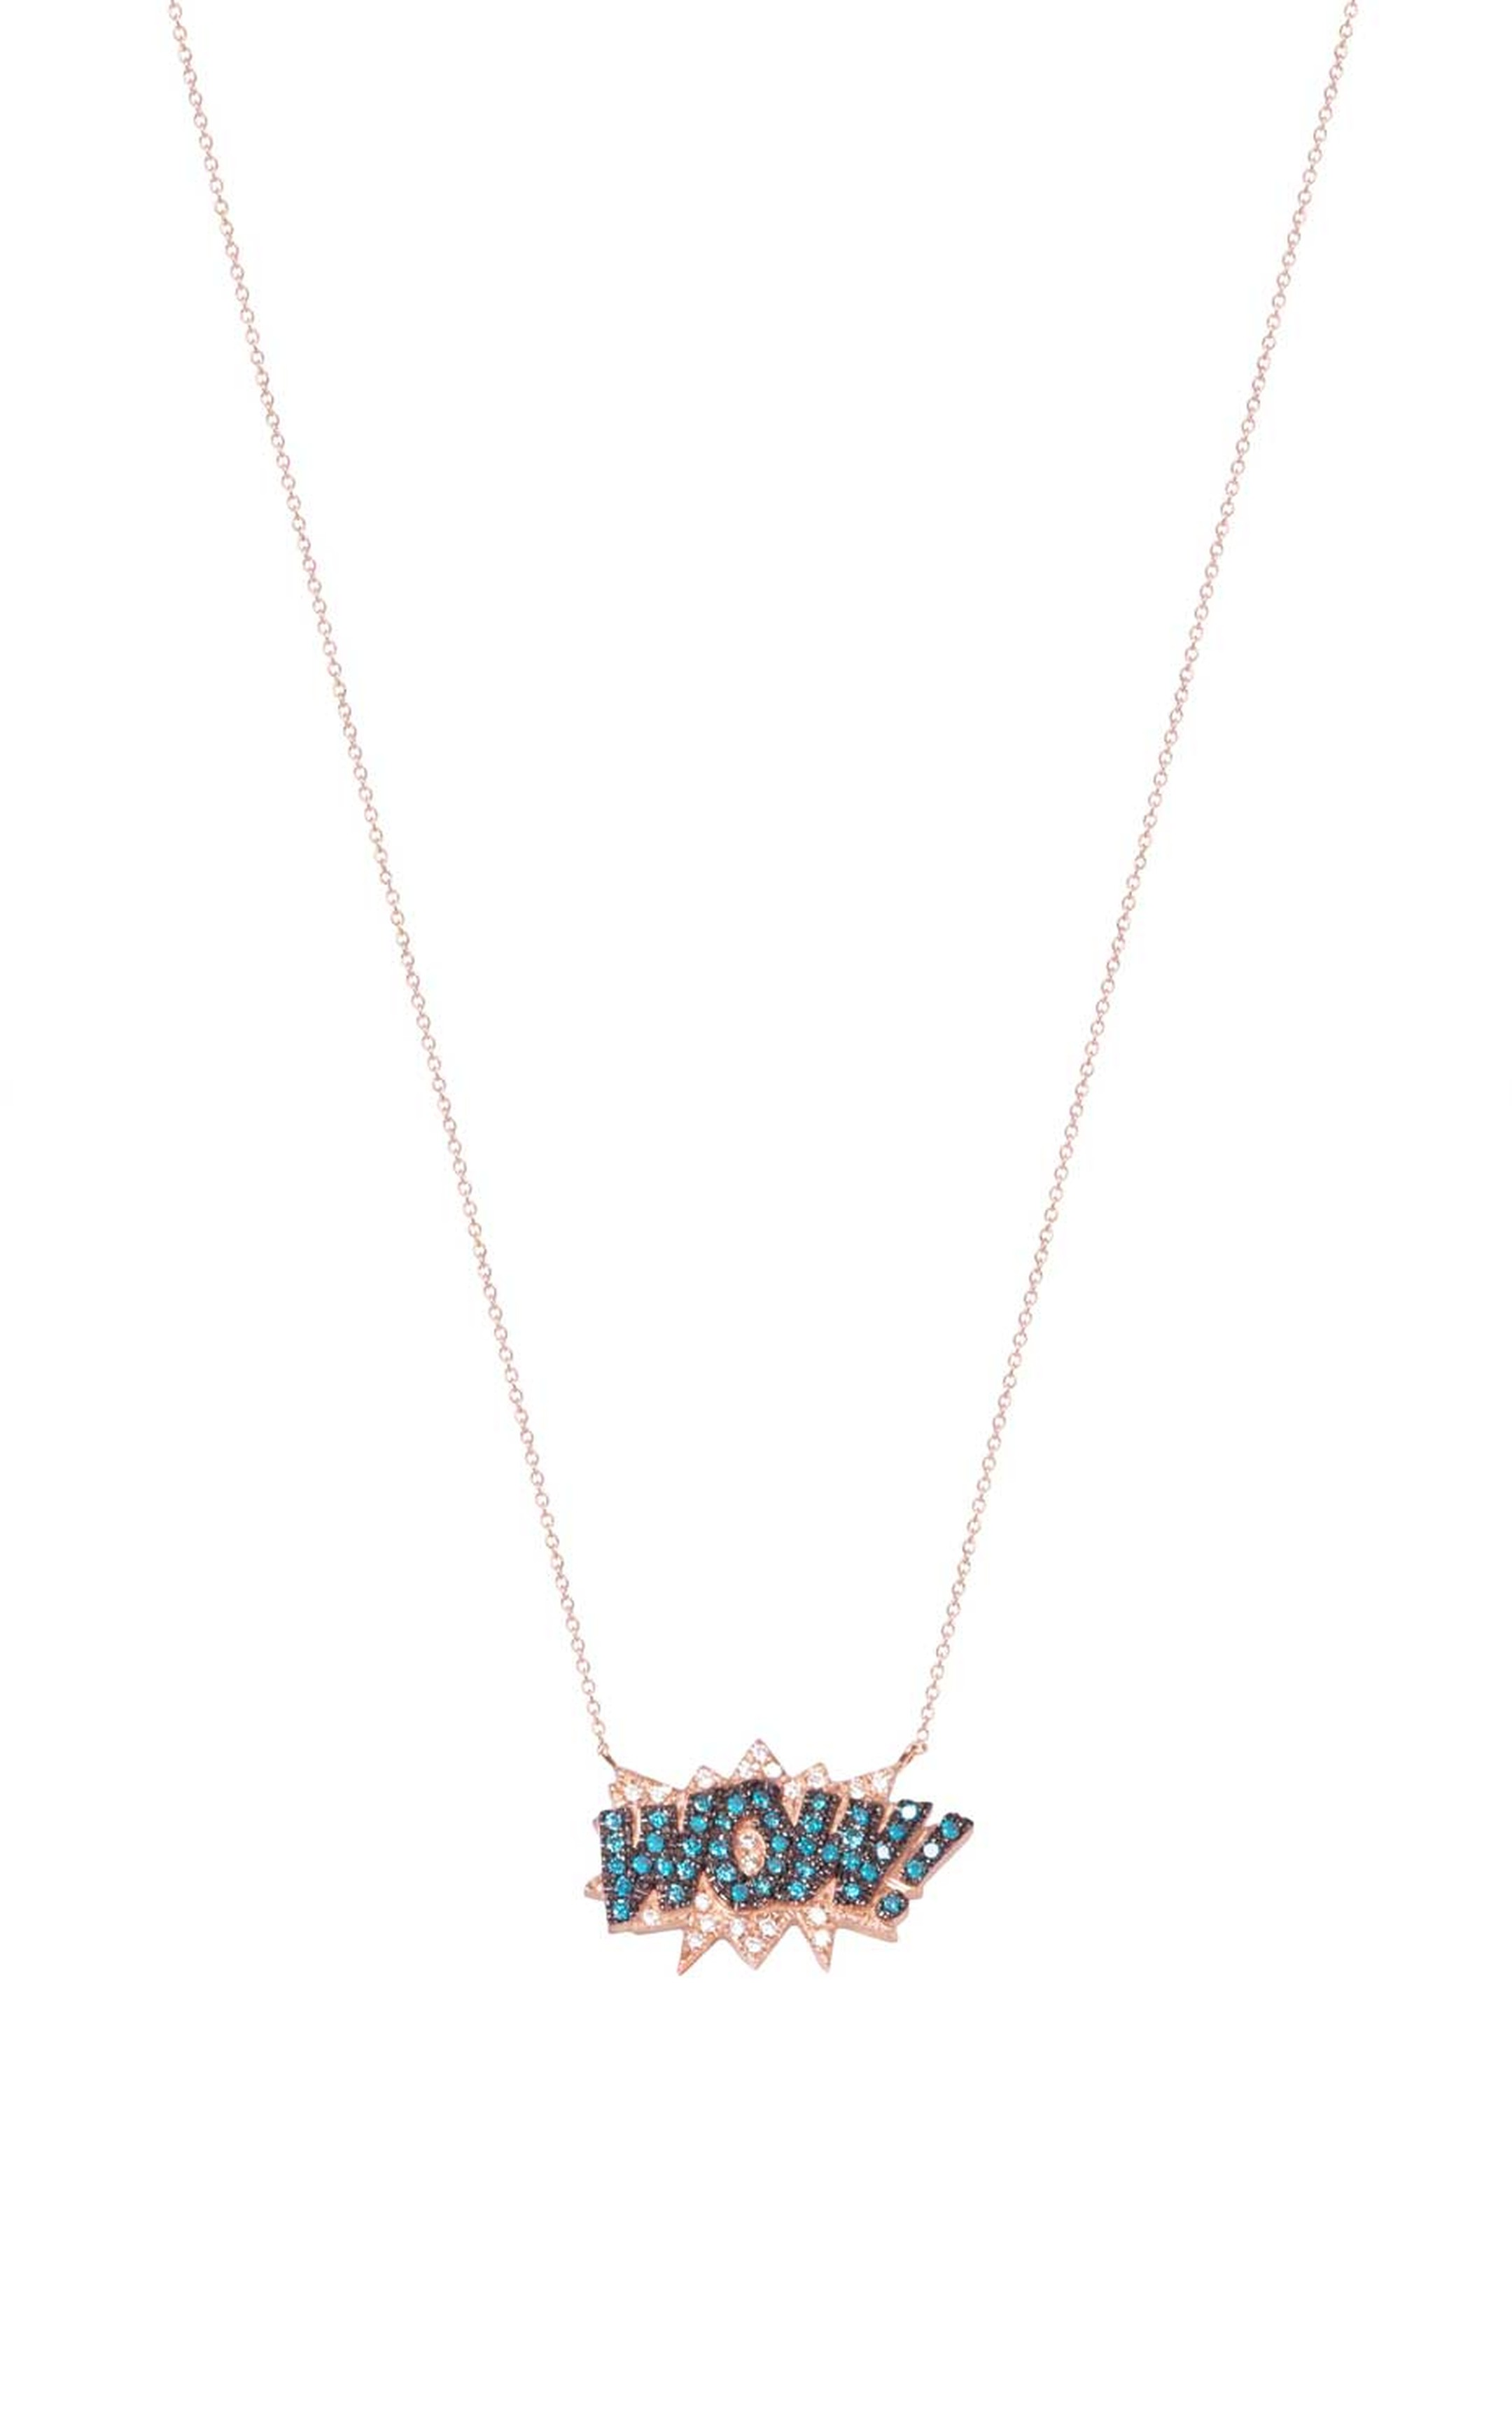 This Diane Kordas Wow necklace features white and blue diamonds on an 18ct rose gold chain.